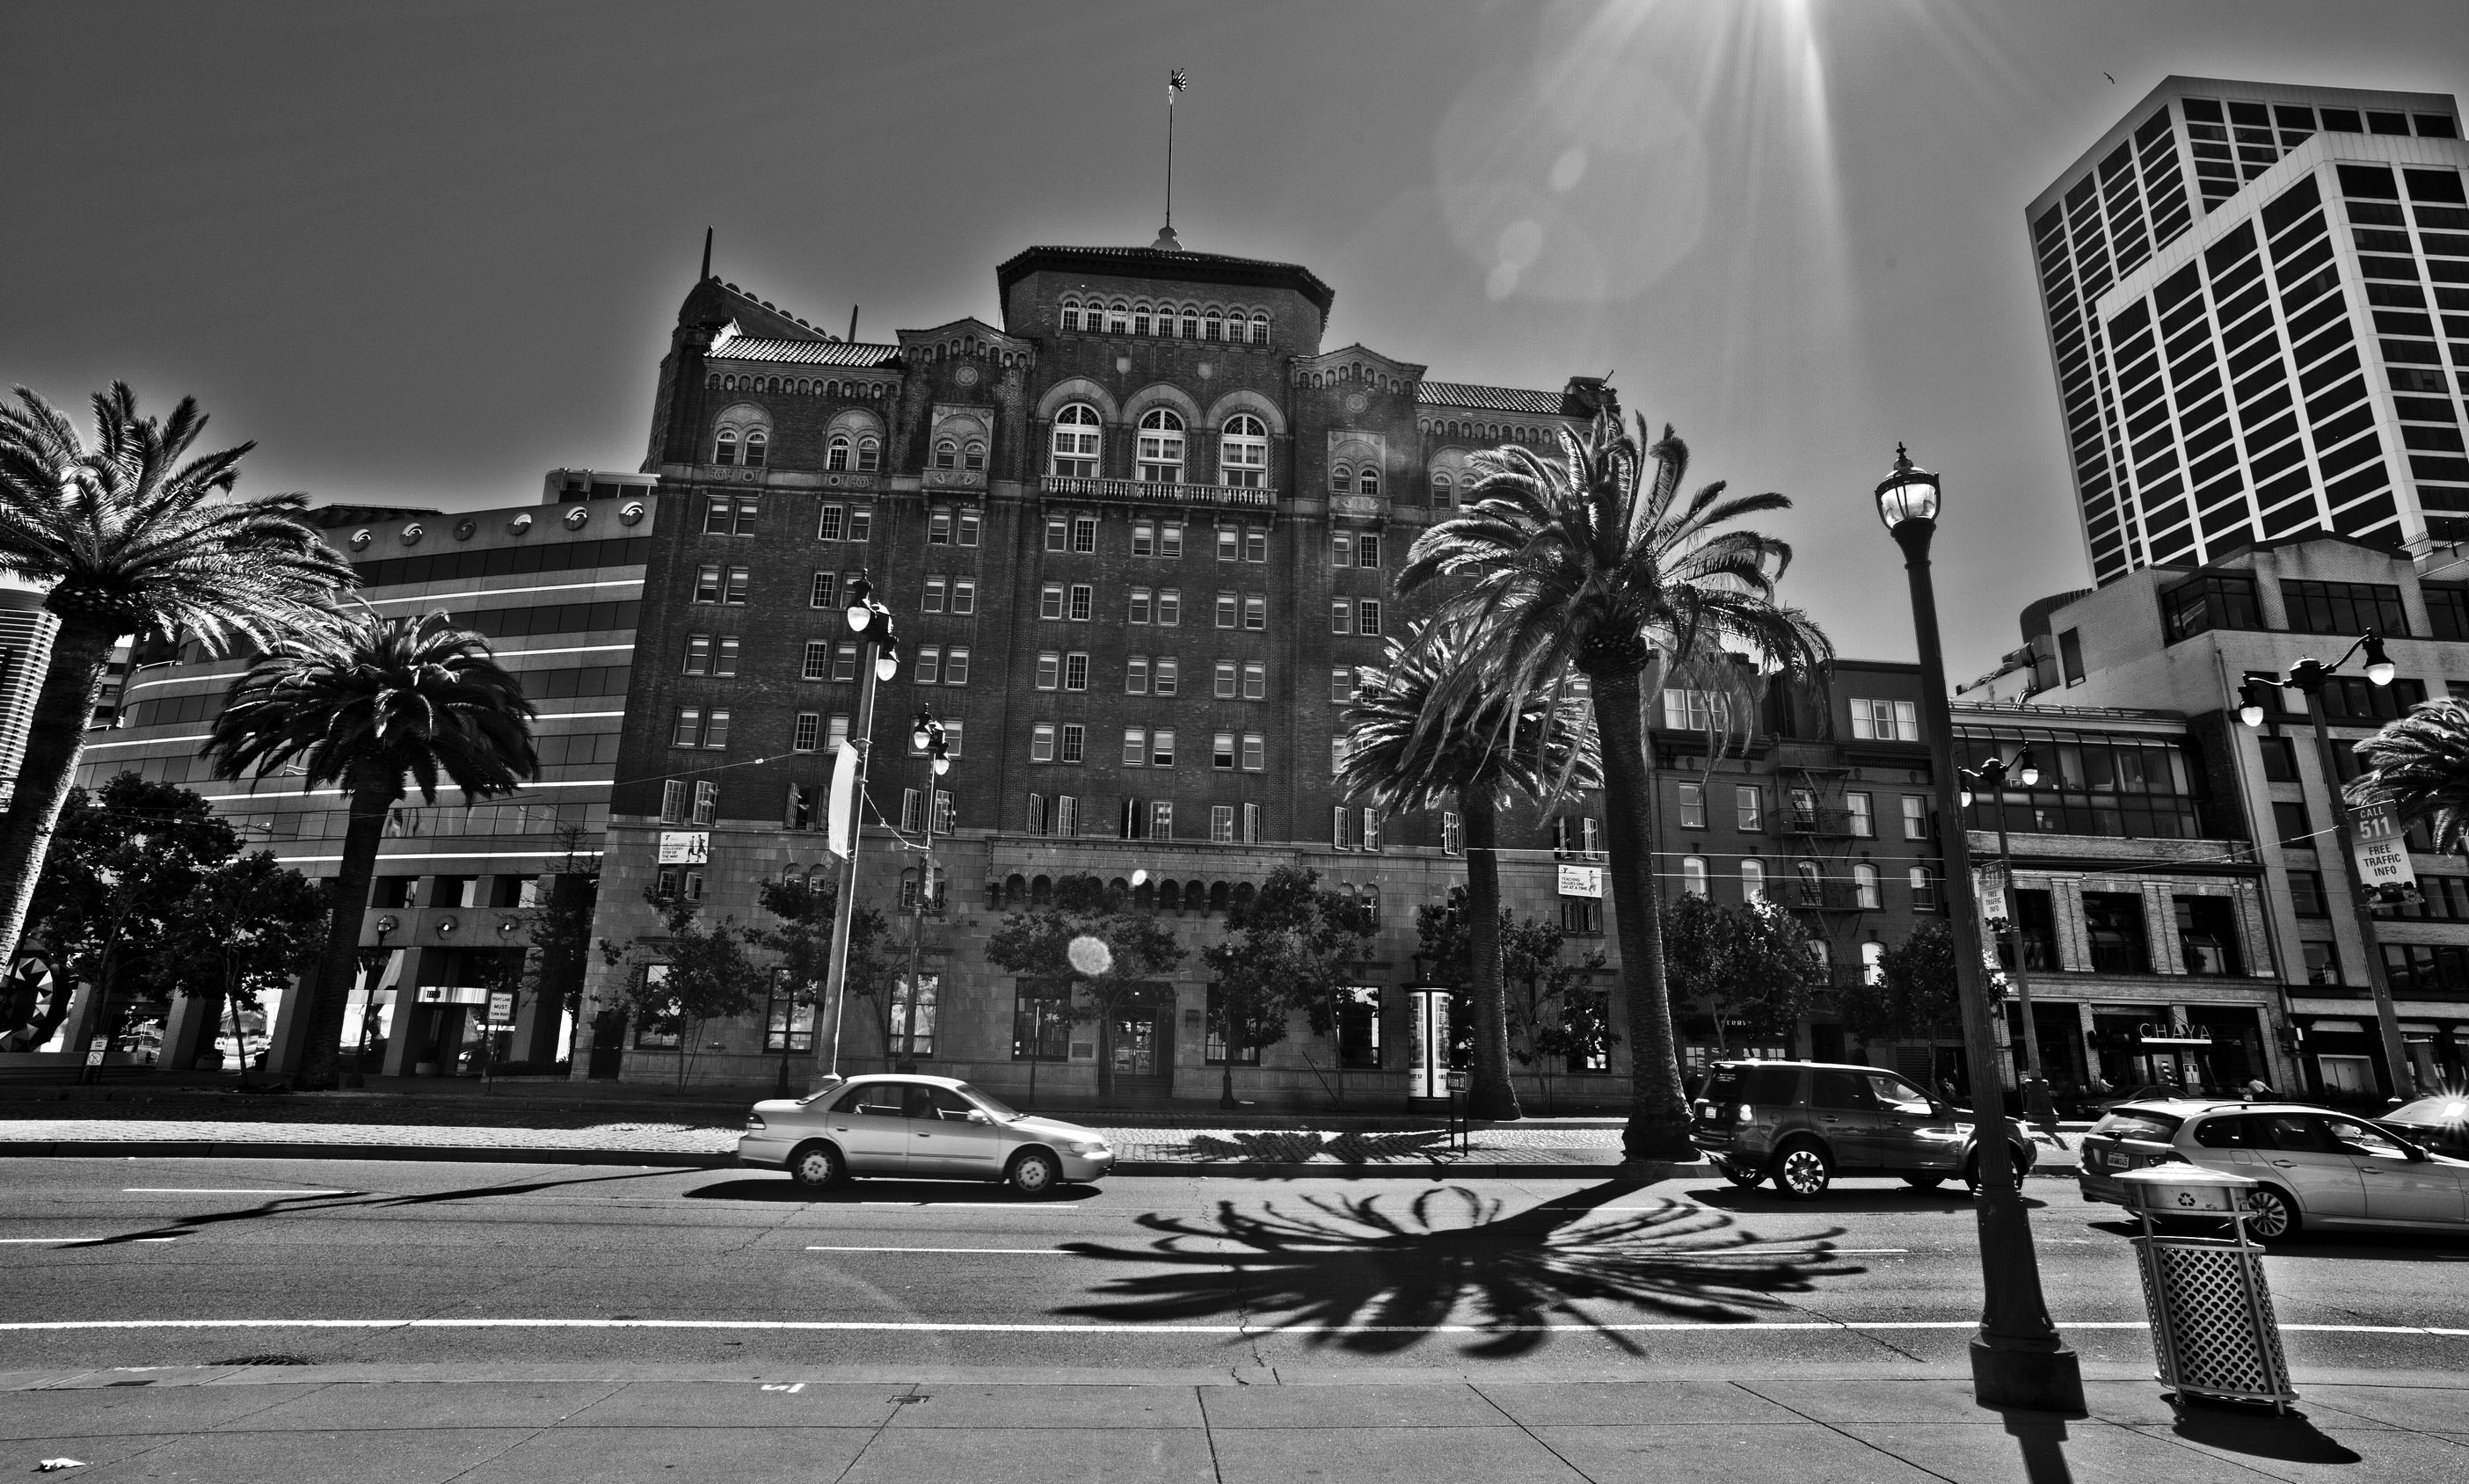 Architecture The Embarcadero St viewed from Pier 17 San Francisco CA July 2011 10